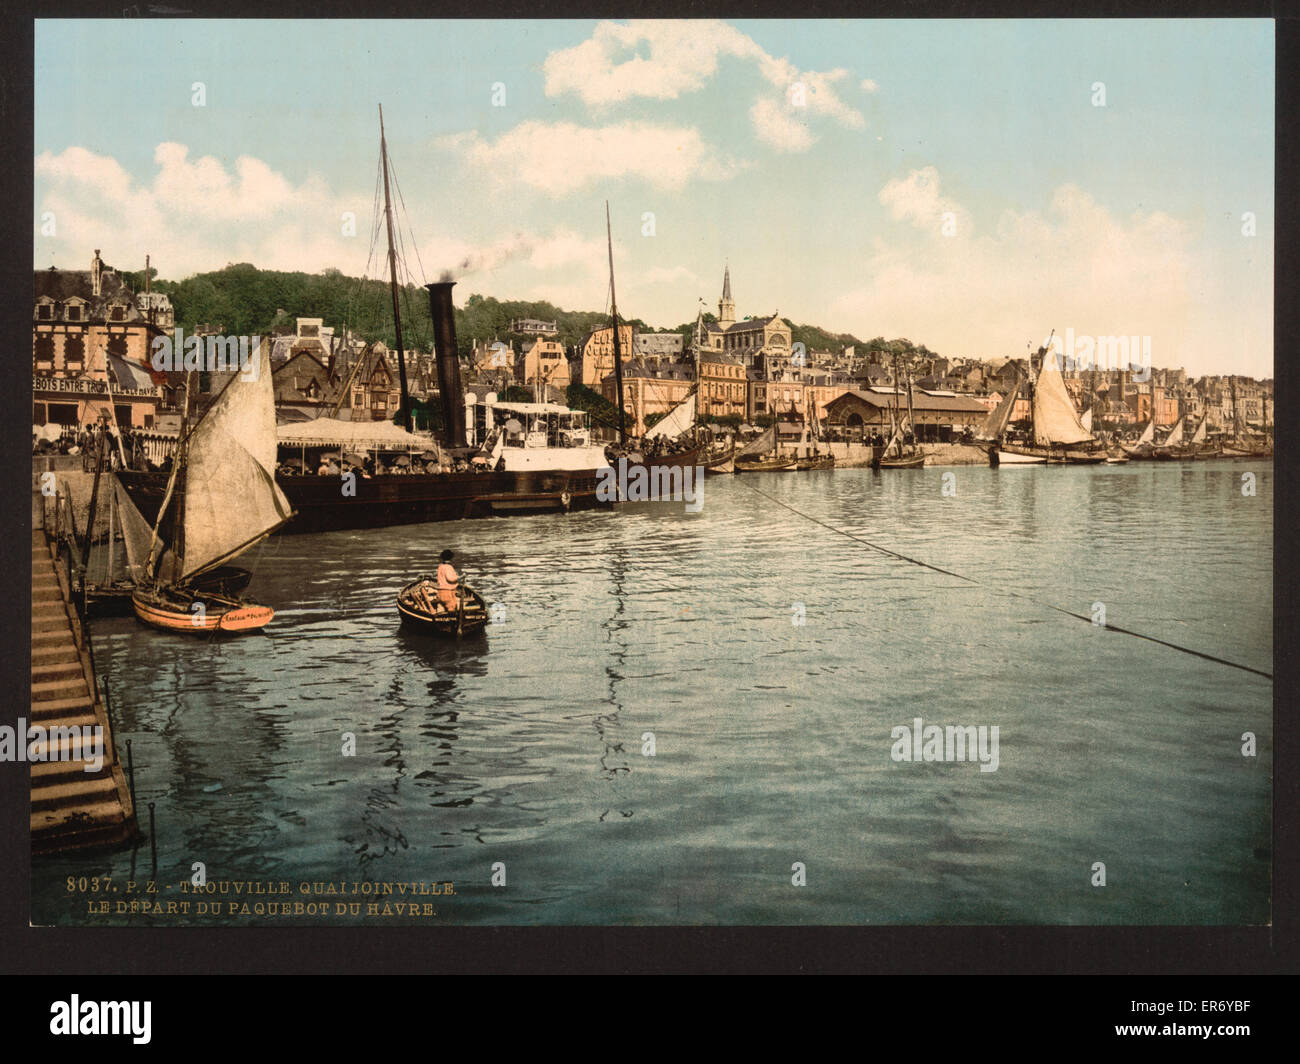 Packet boat leaving Joinville Quay, Trouville, France. Date between ca. 1890 and ca. 1900. - Stock Image